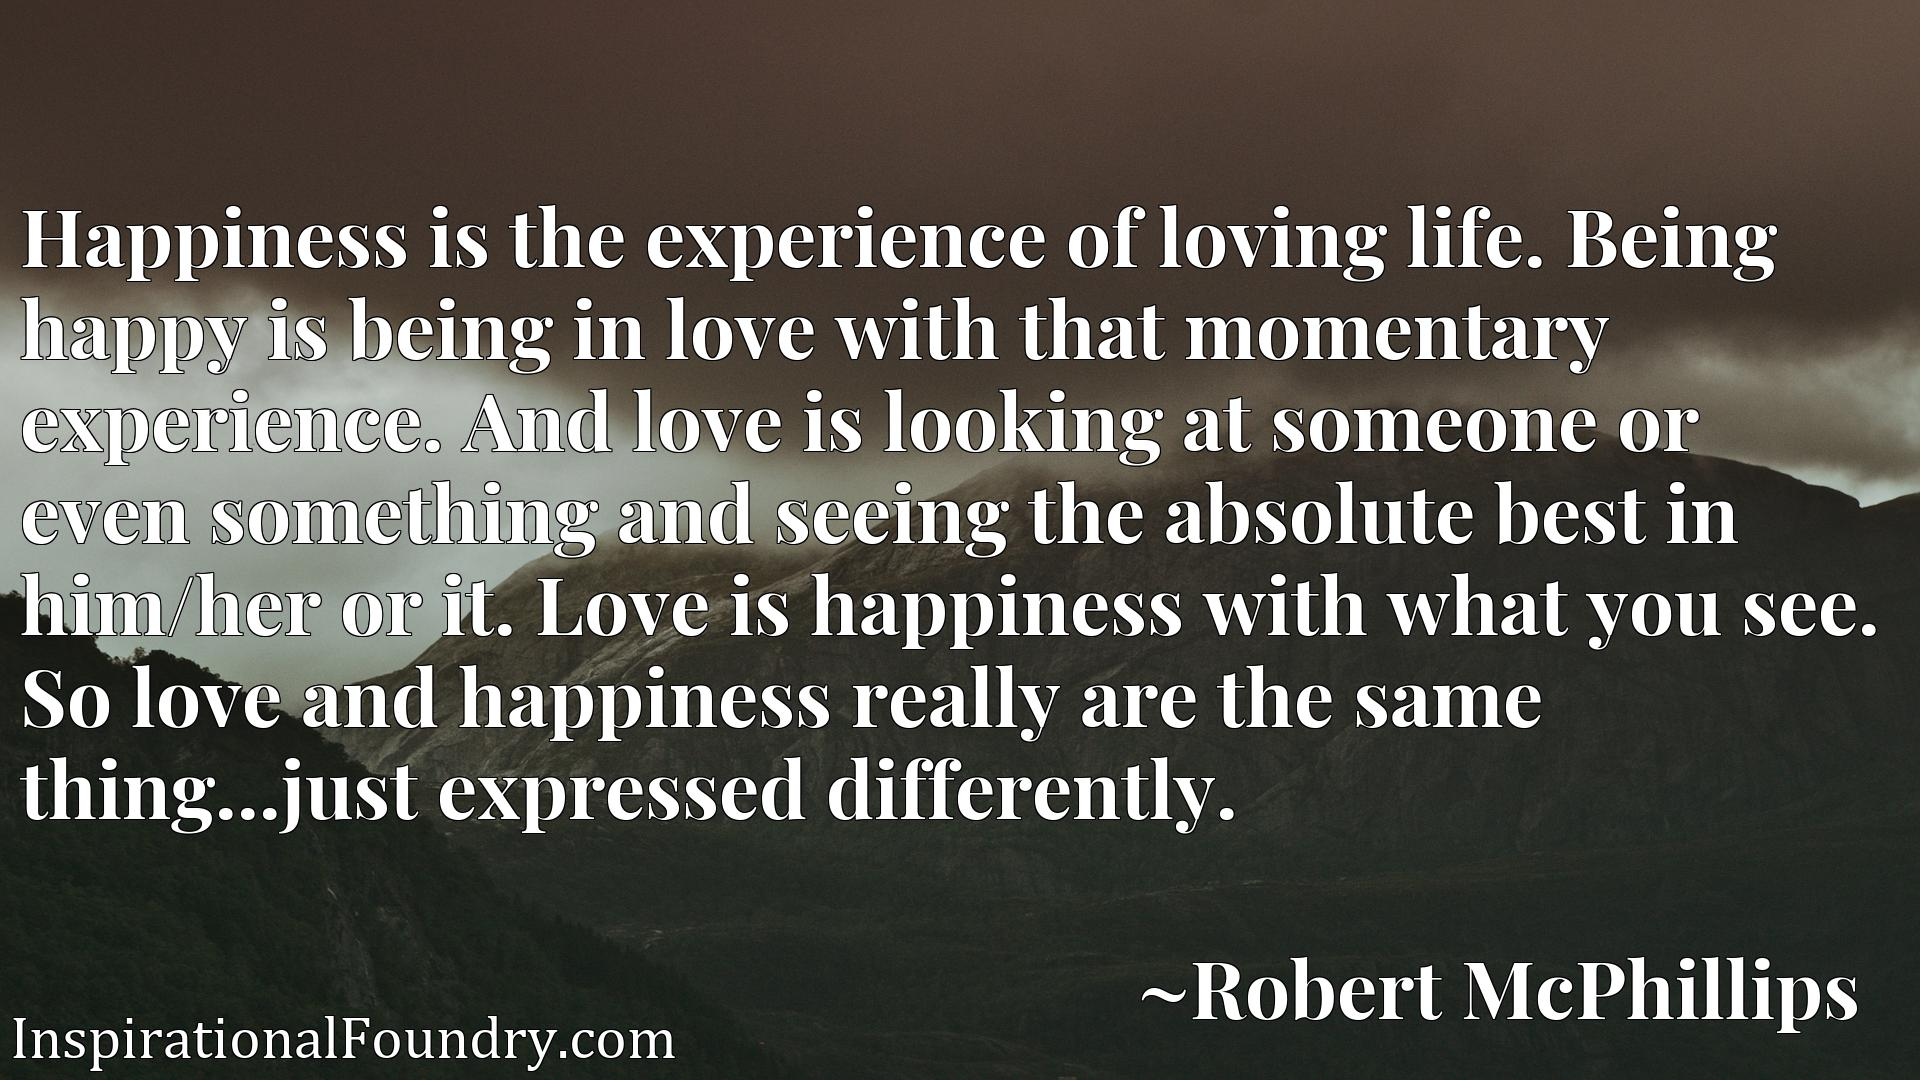 Happiness is the experience of loving life. Being happy is being in love with that momentary experience. And love is looking at someone or even something and seeing the absolute best in him/her or it. Love is happiness with what you see. So love and happiness really are the same thing...just expressed differently.